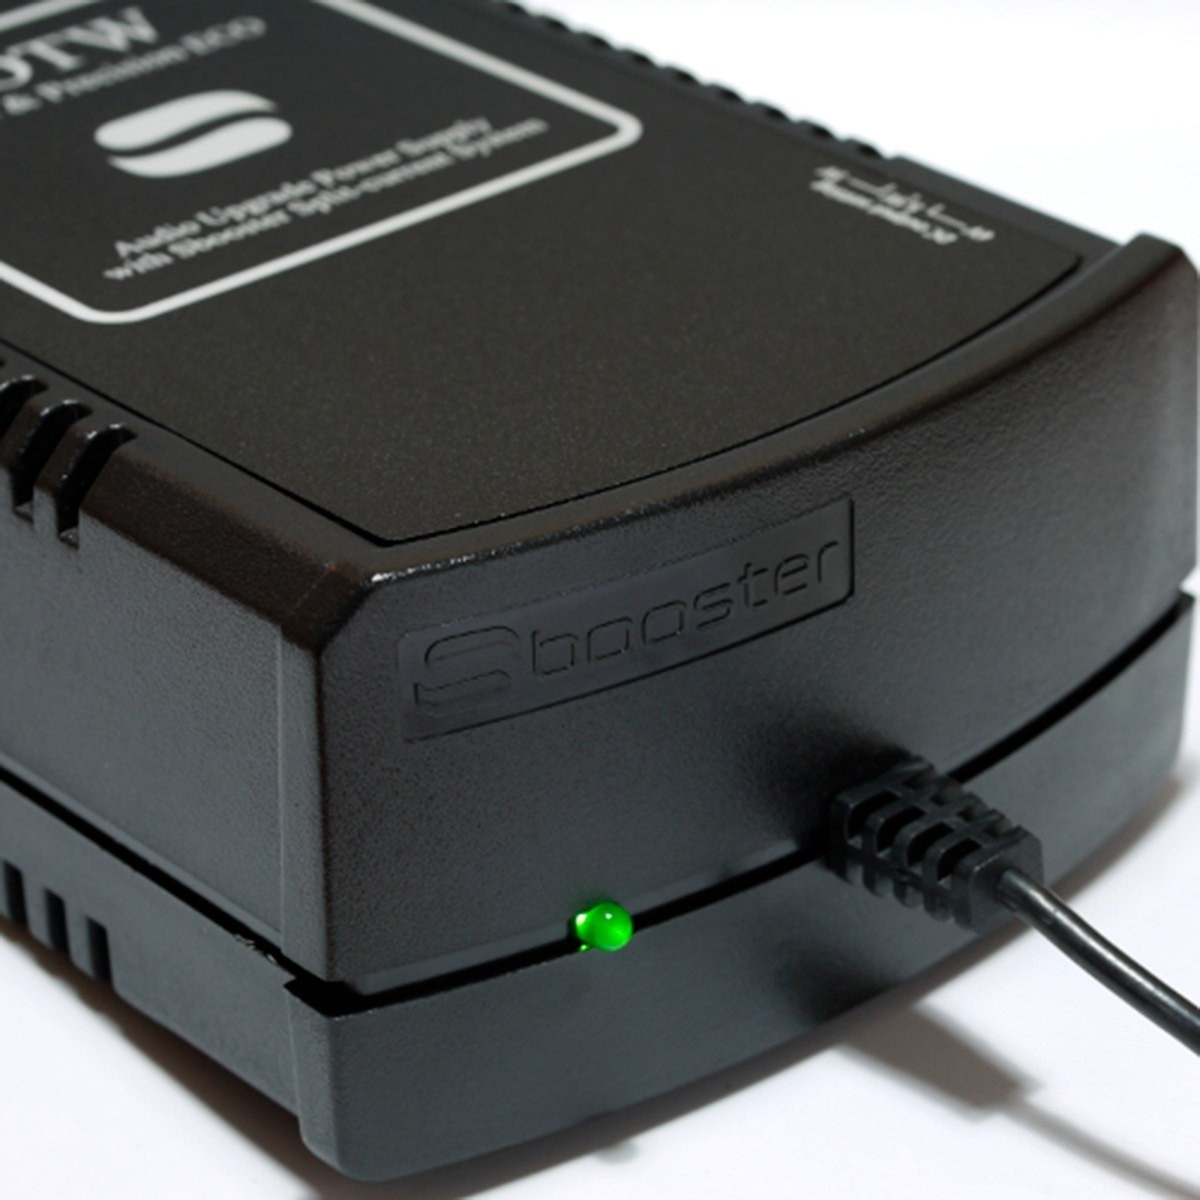 Sbooster BOTW P&P ECO Power Supply | BOTW P&P ECO |